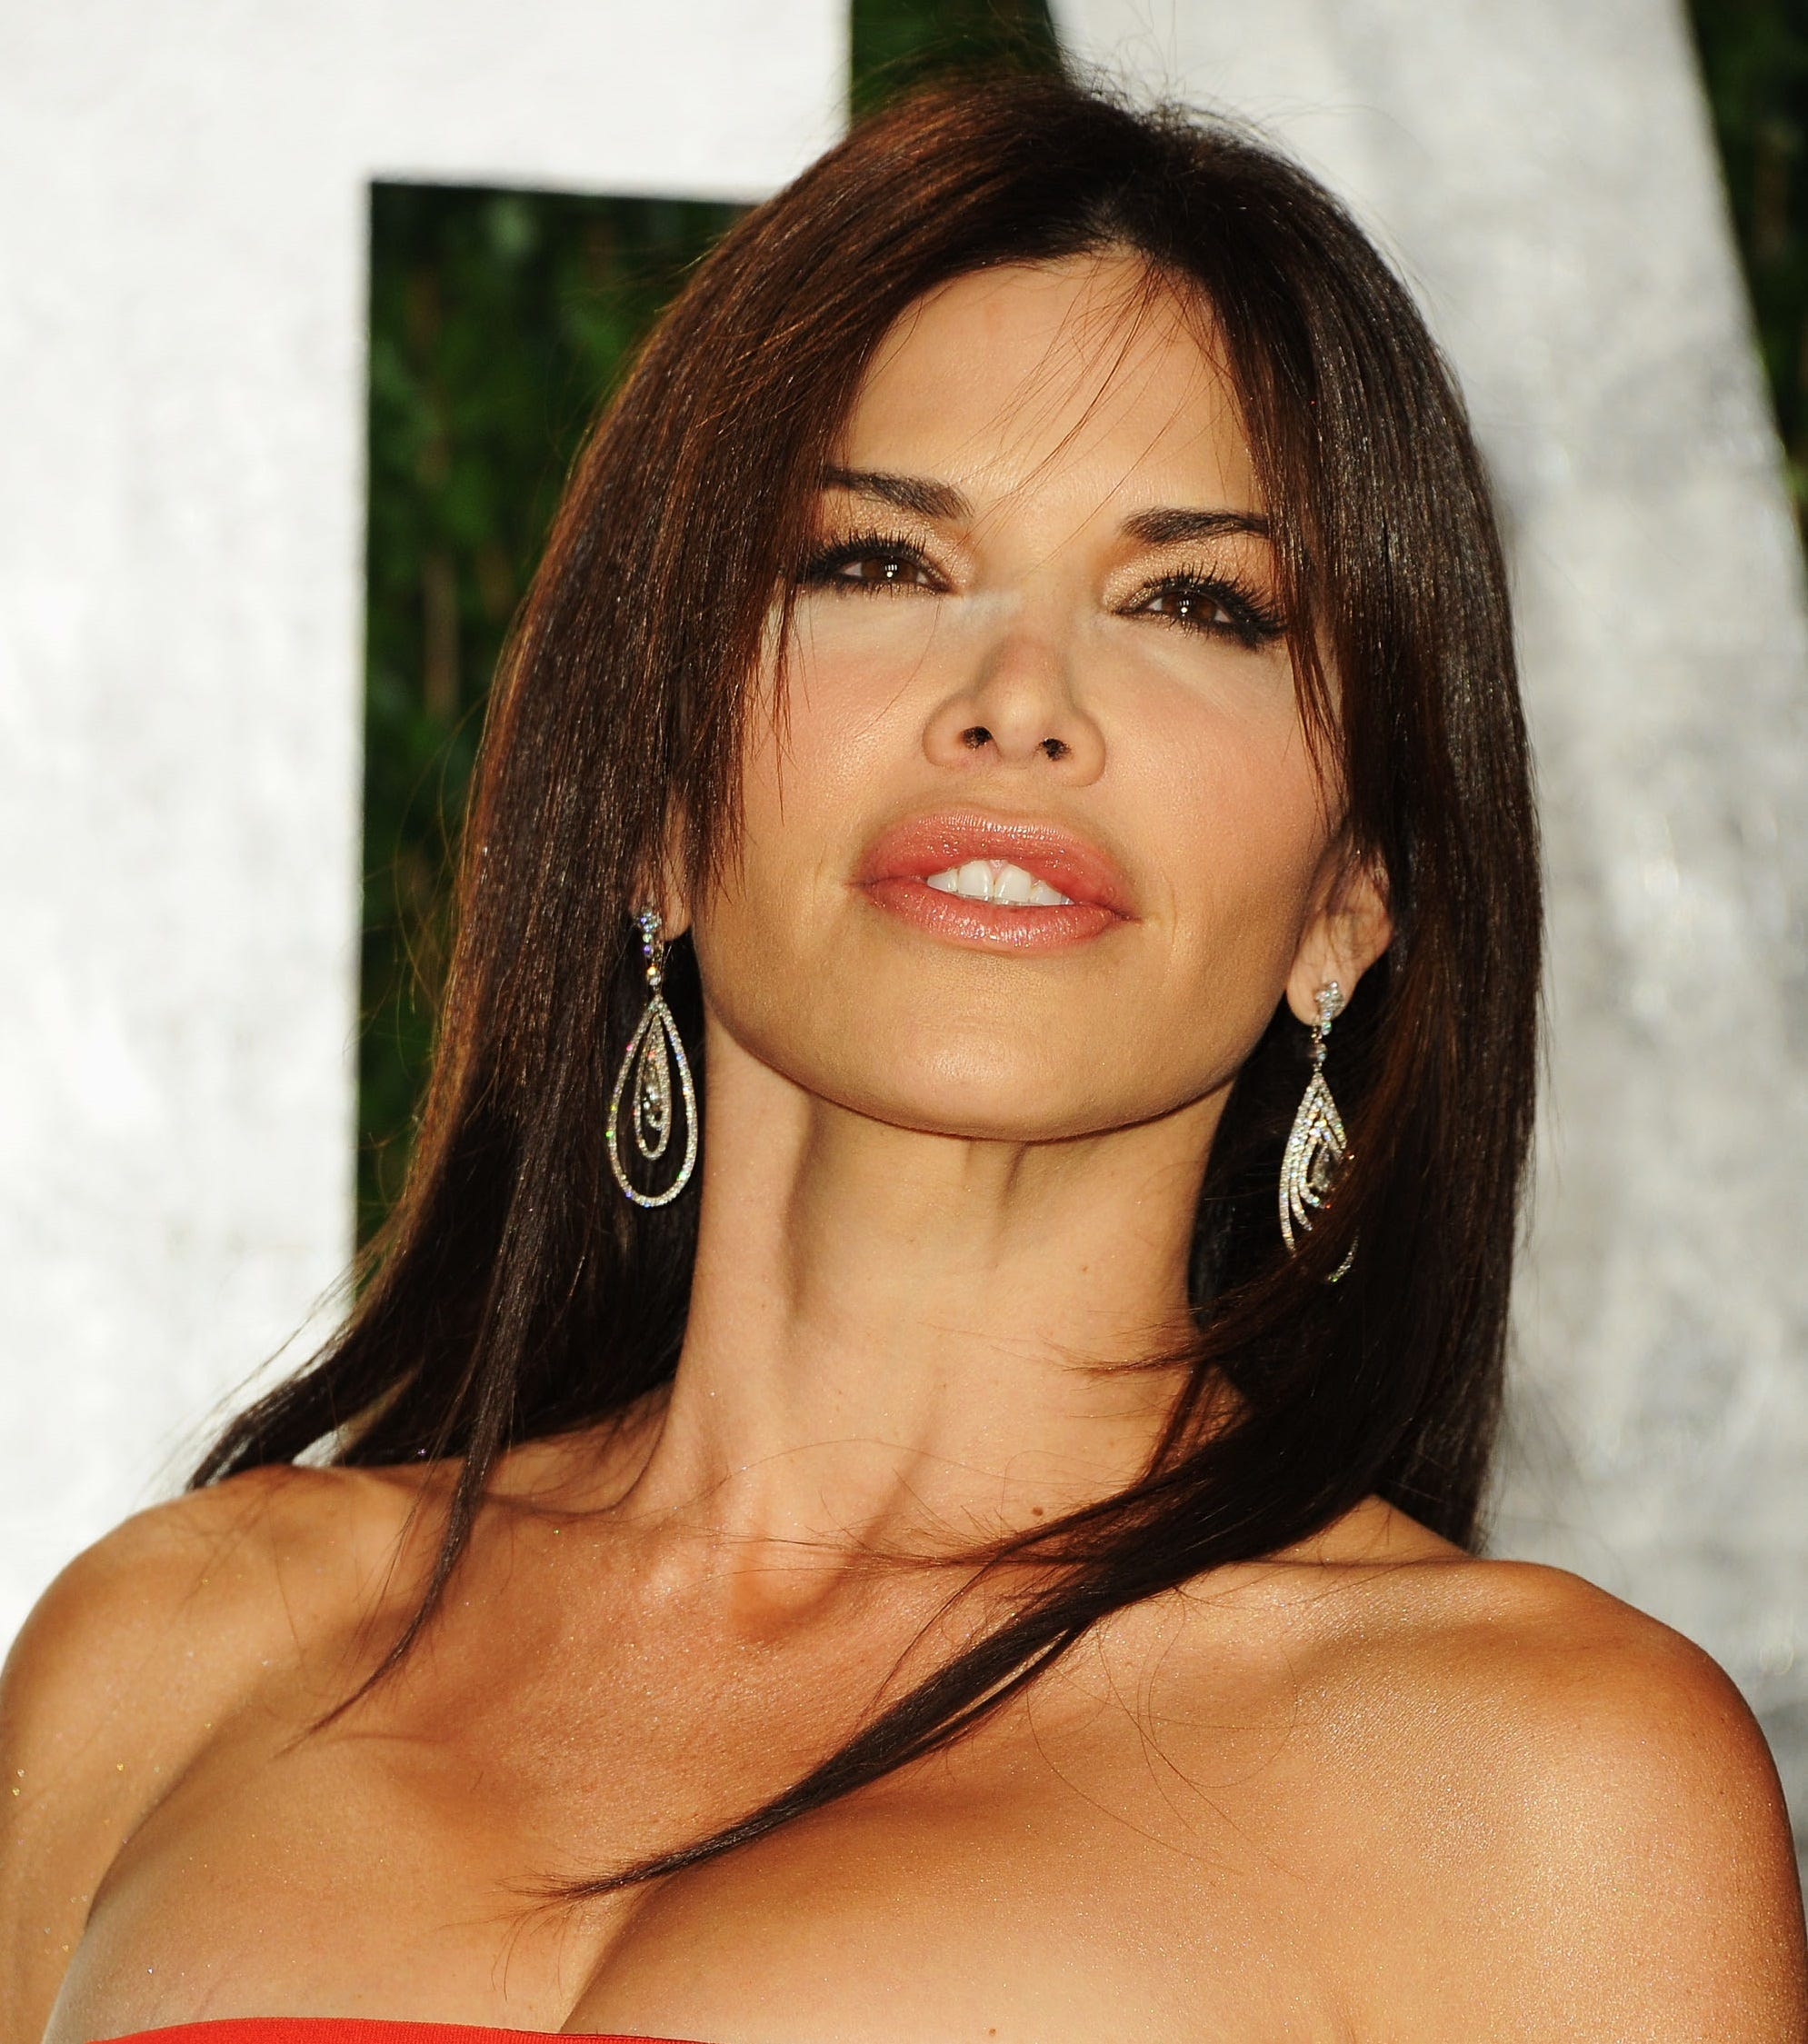 Lauren Sanchez, linked to Jeff Bezos divorce, once worked at Channel 3 (KTVK)